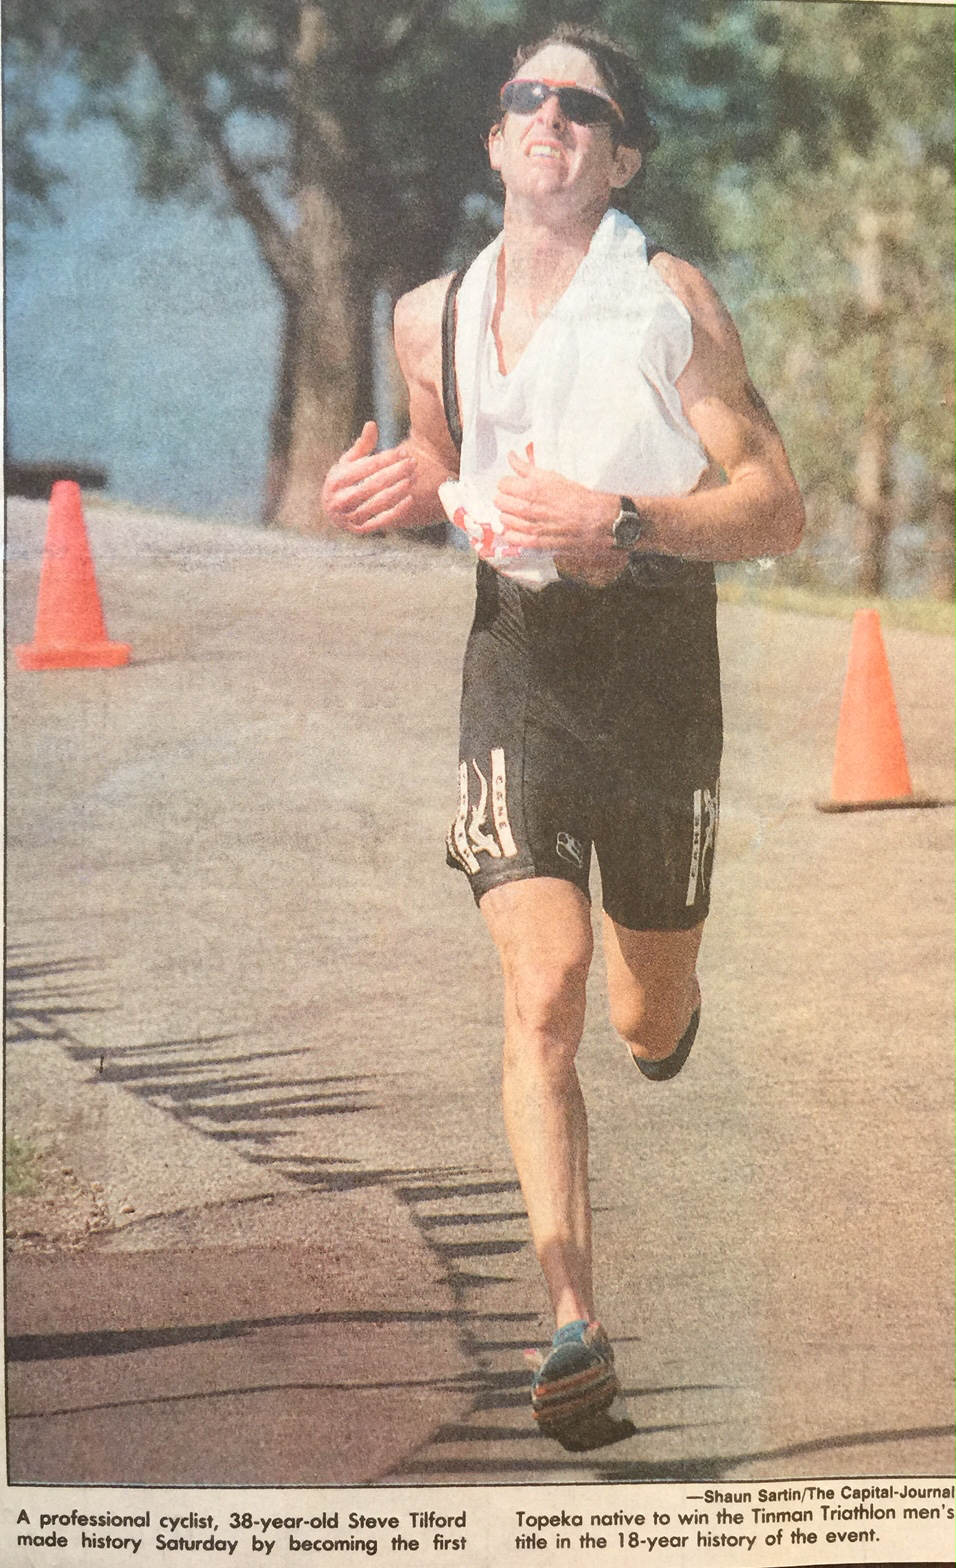 Obviously my running form is stellar, so at least I have that going for me.